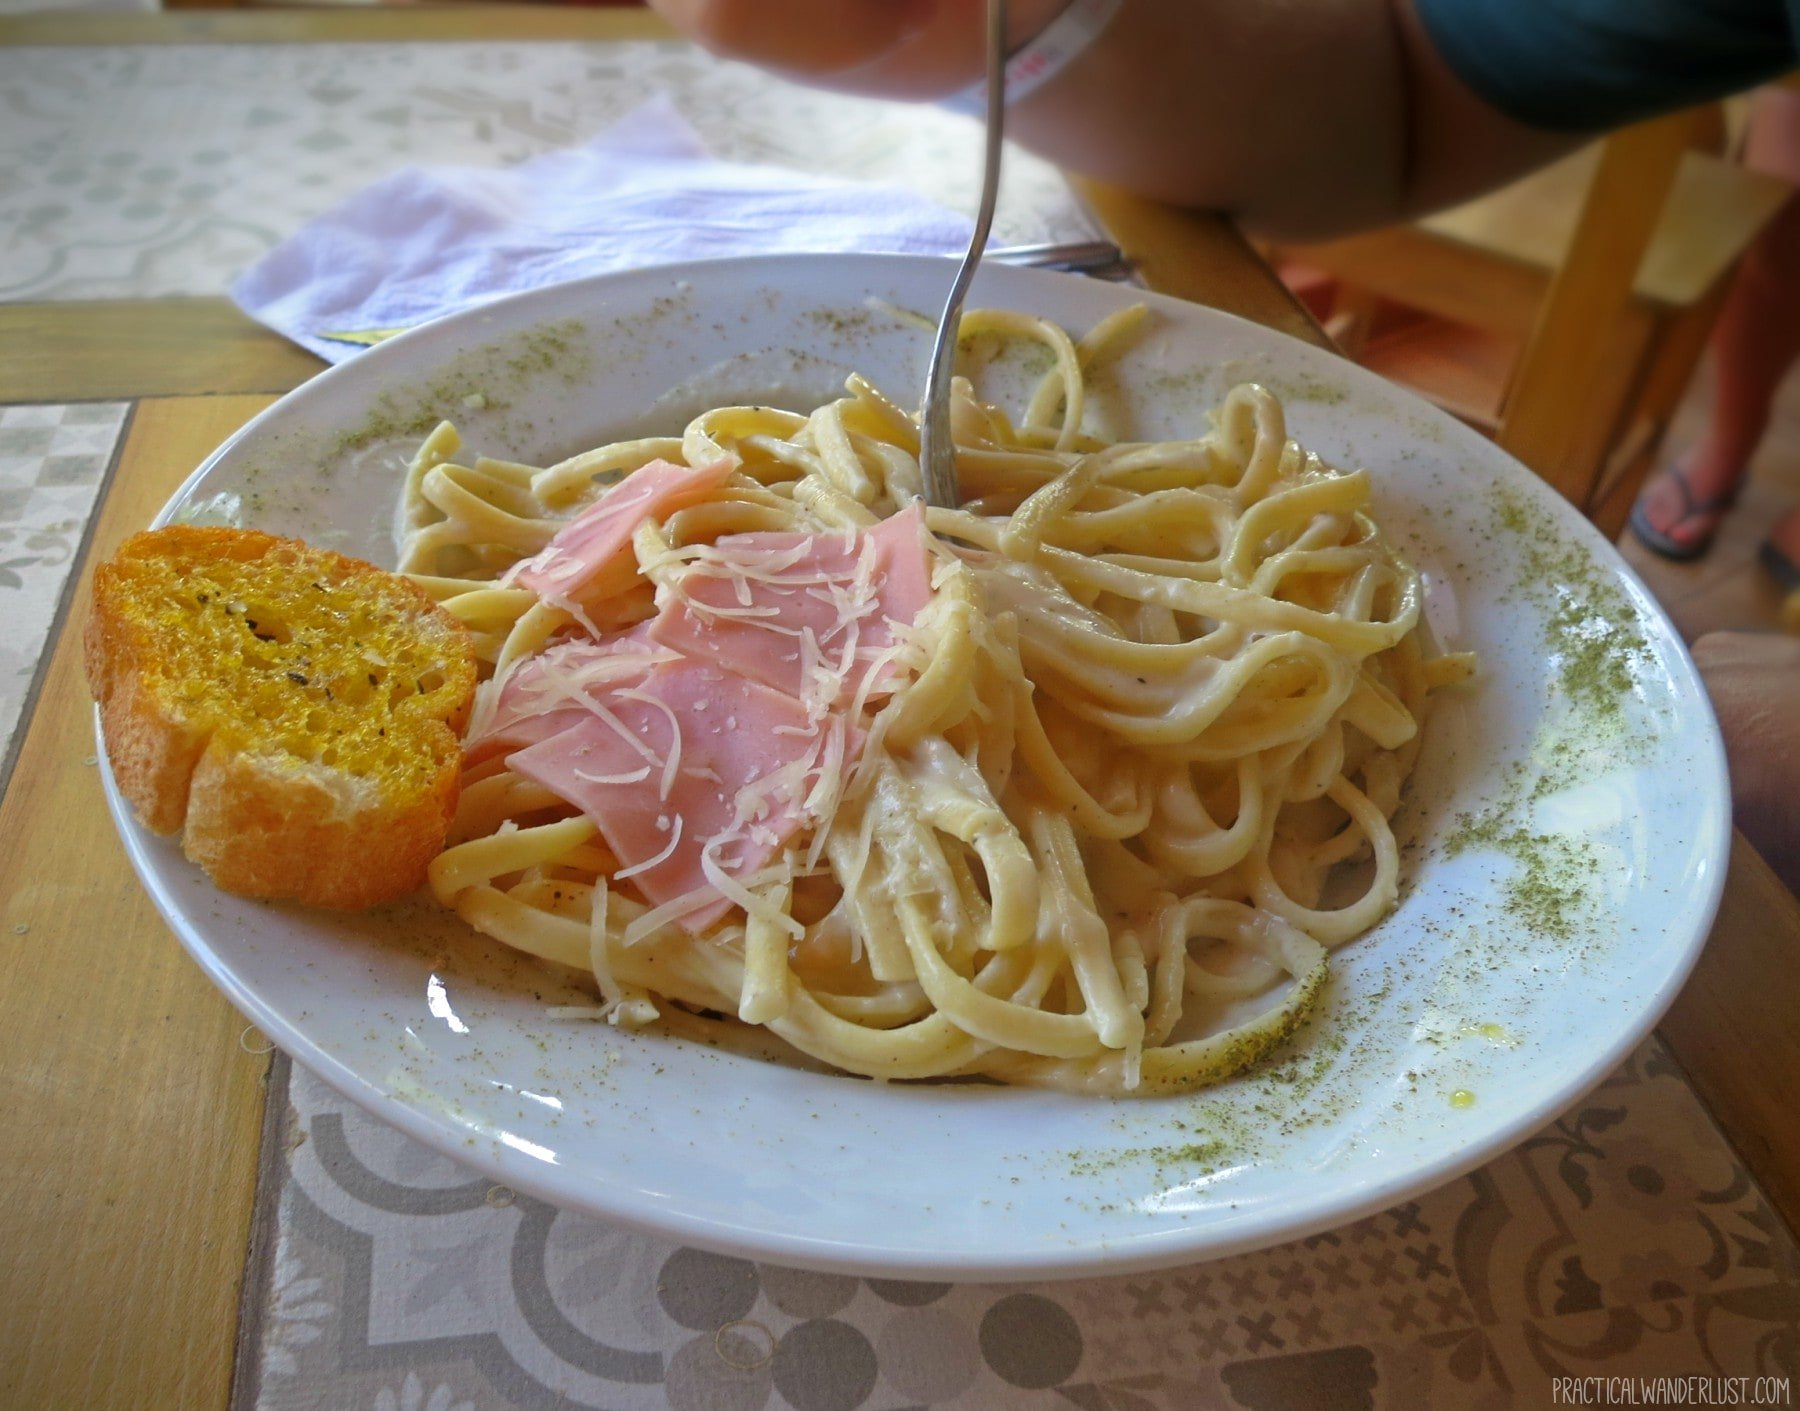 Lunch meat and alfredo pasta in Huacachina, Peru. Lunch meat on pasta is one of the things nobody told us about Backpacking in Peru!